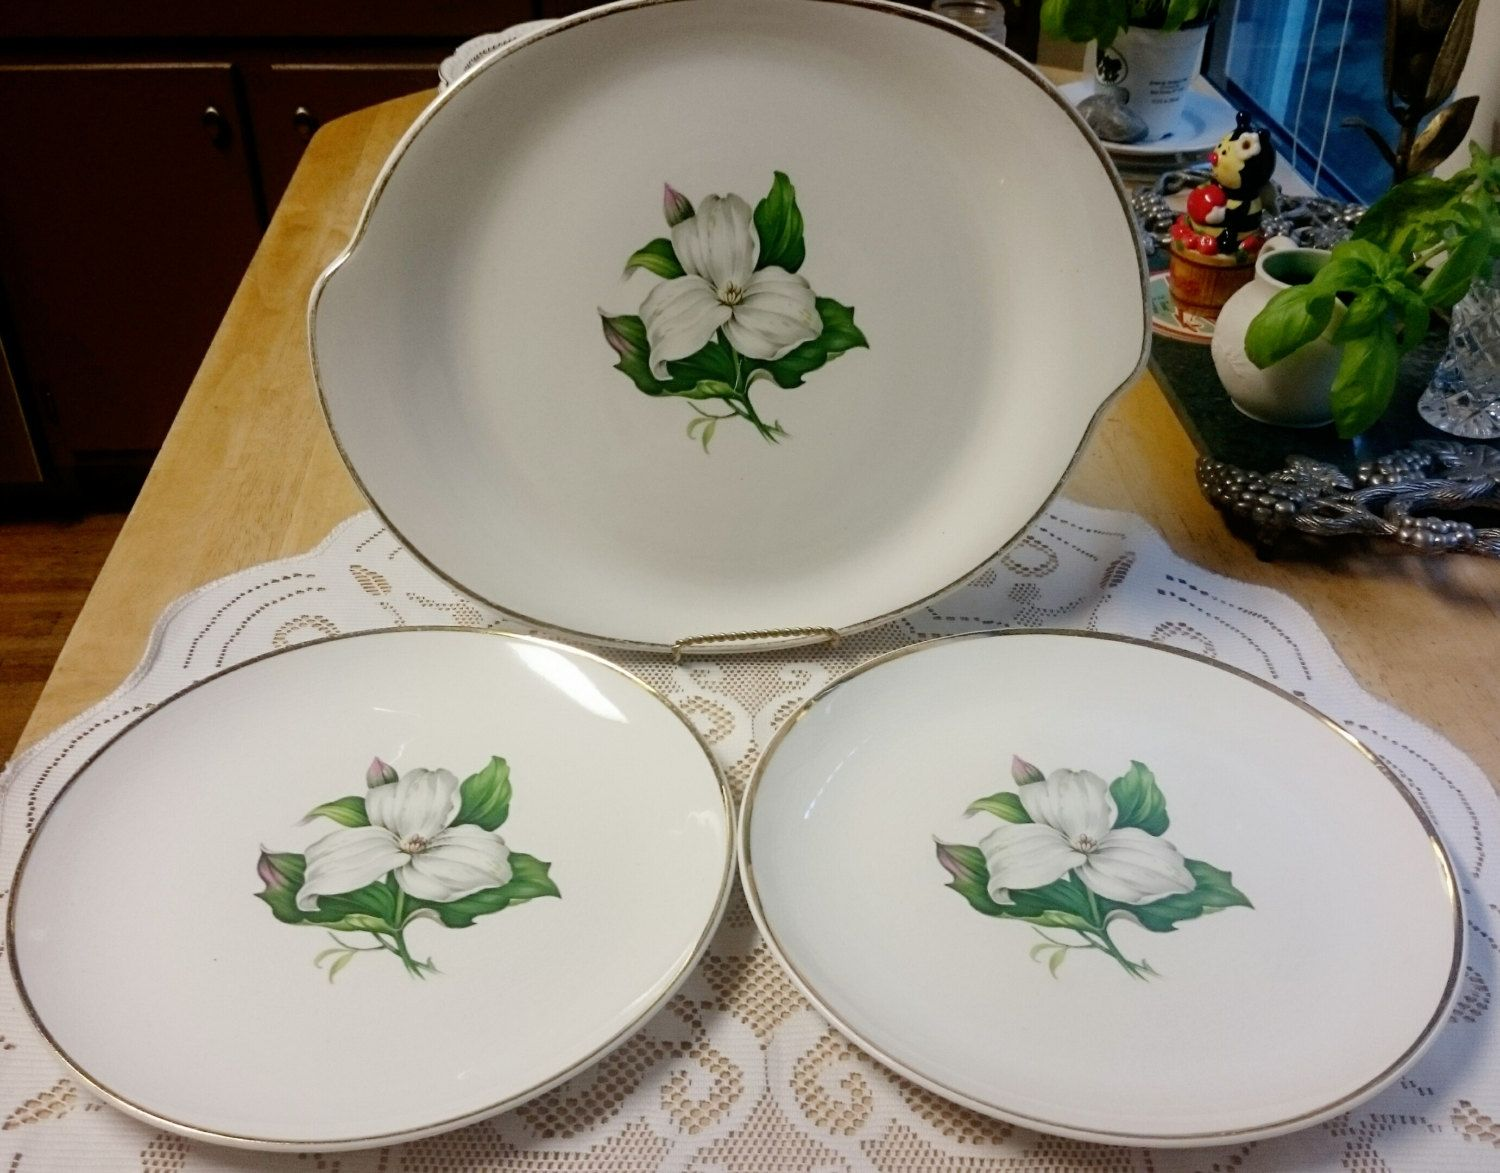 The American Limoges Glamour -Trillium Made in the USA Gold trim 2 Plates and Large Platter by AntiquatedElegance on Etsy & The American Limoges Glamour -Trillium G-410 Made in the USA 22k ...